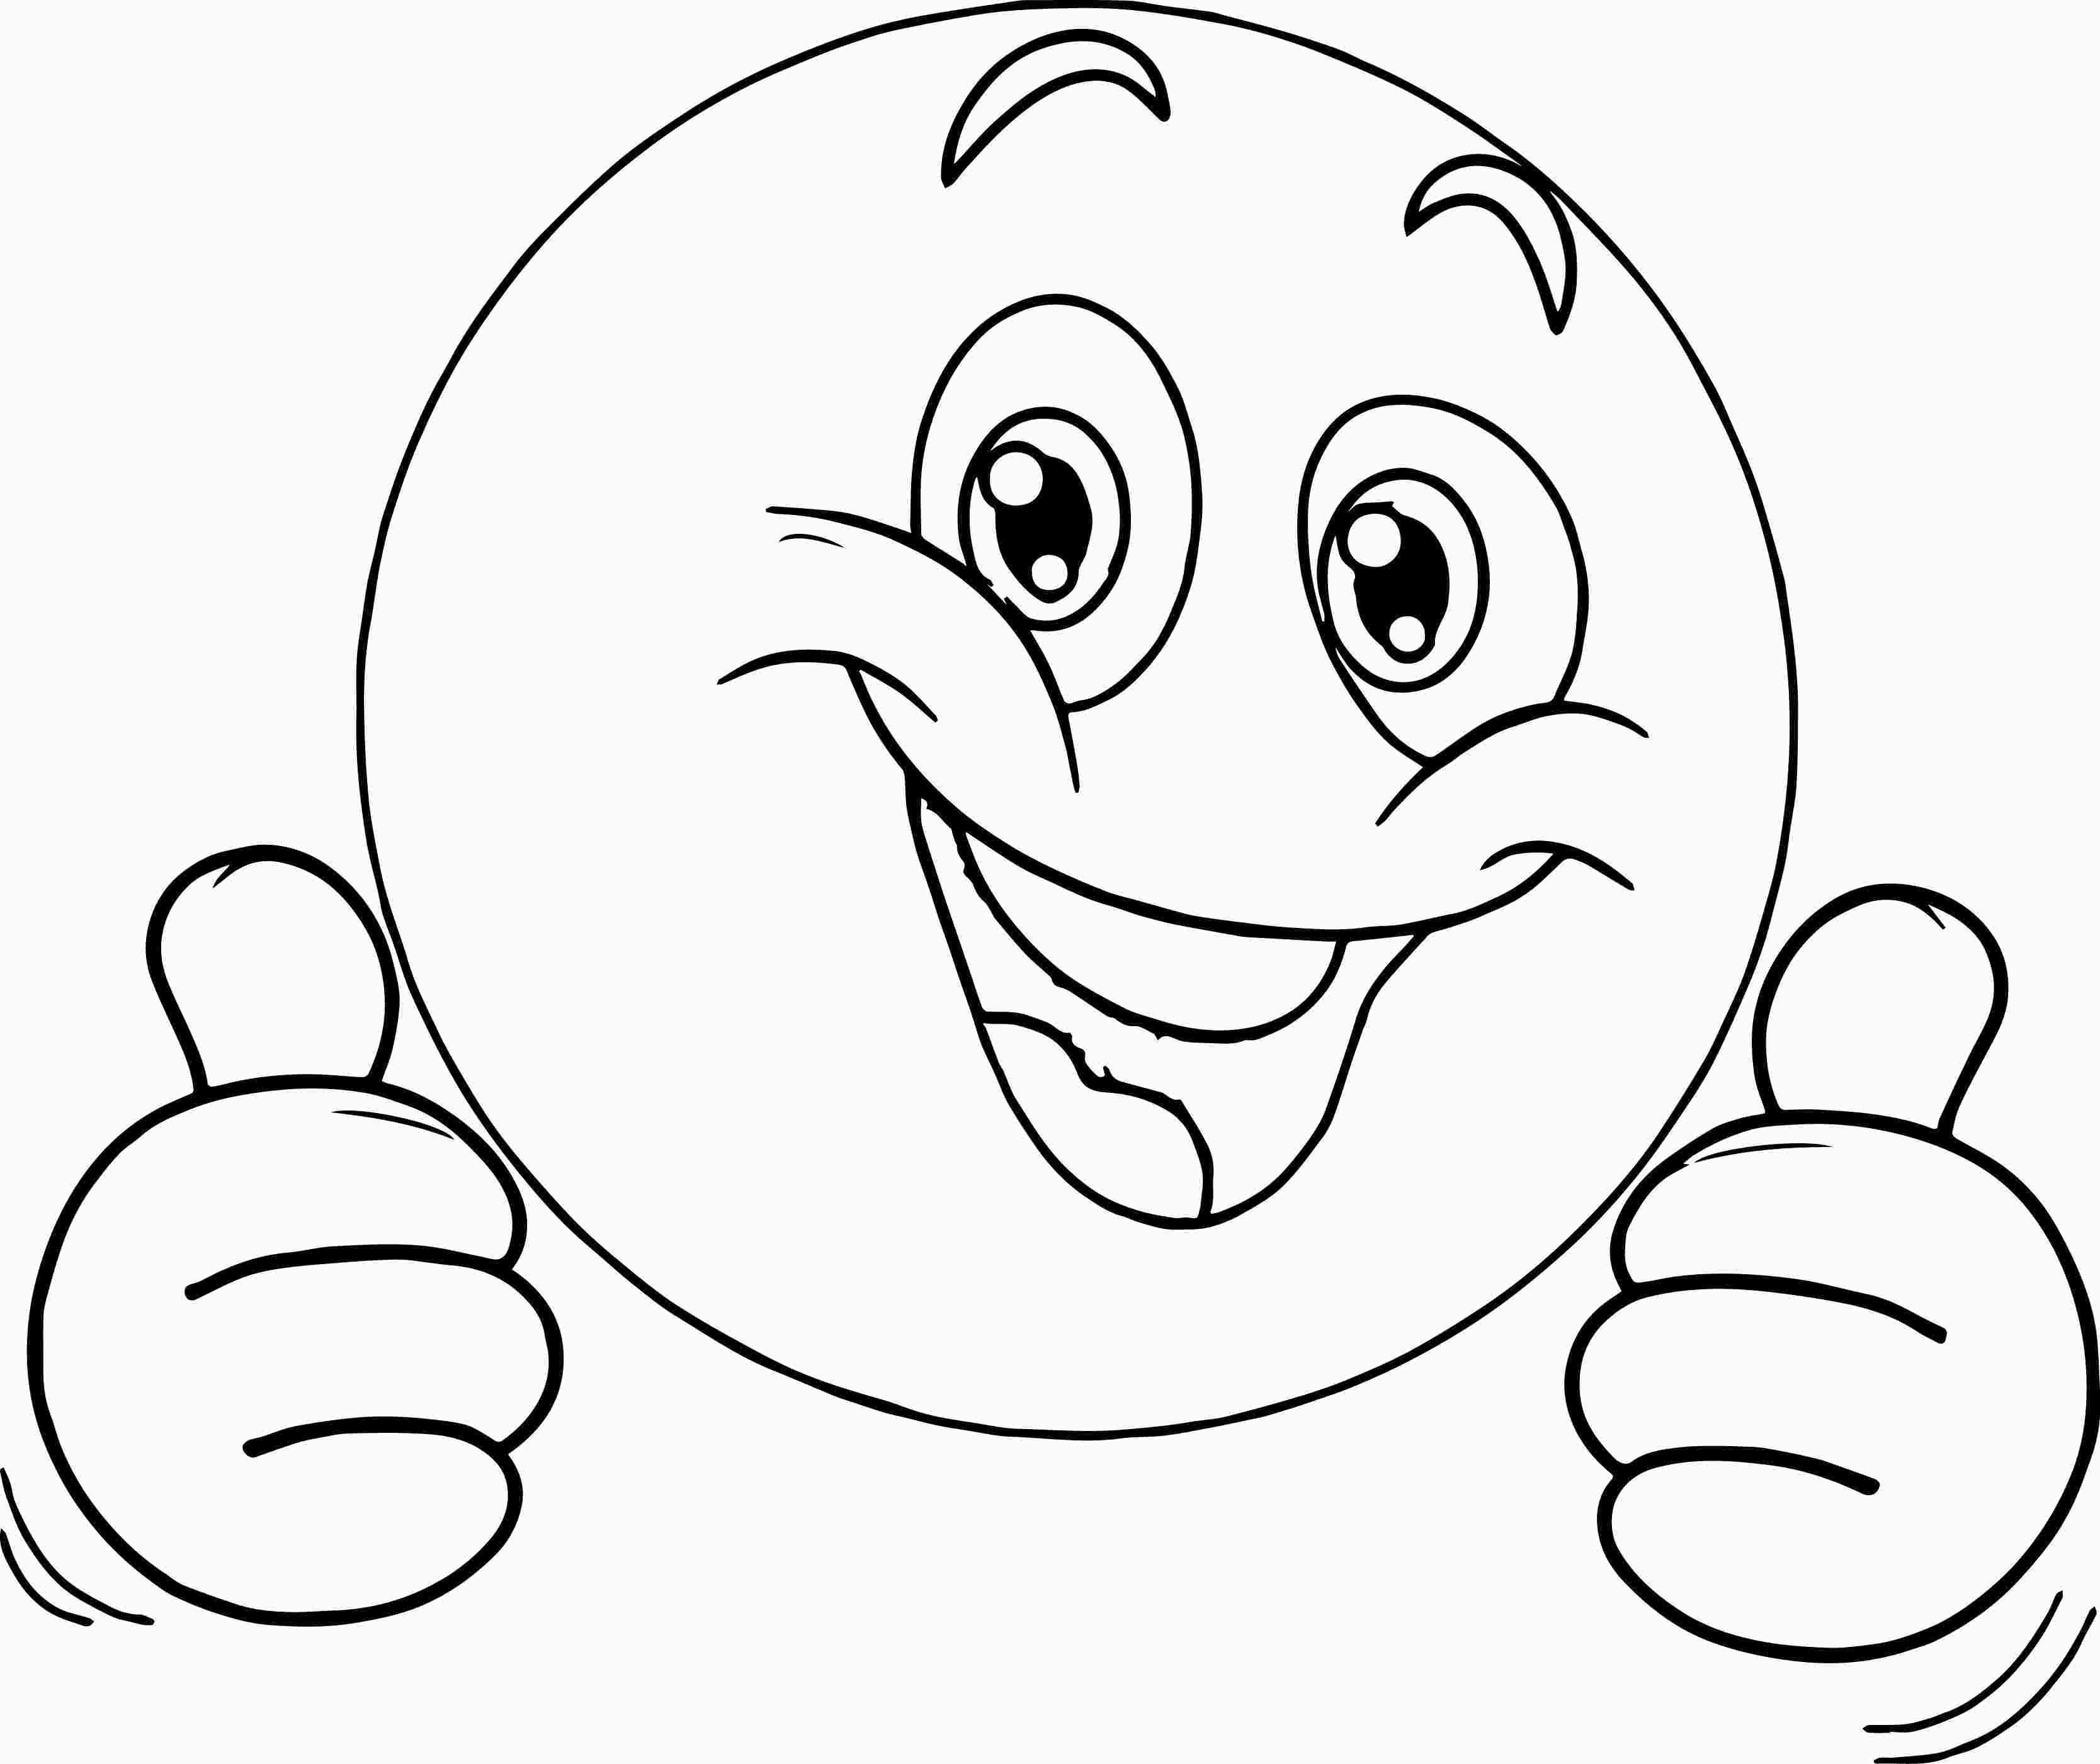 Smiley Faces Coloring Pages Coloring Home